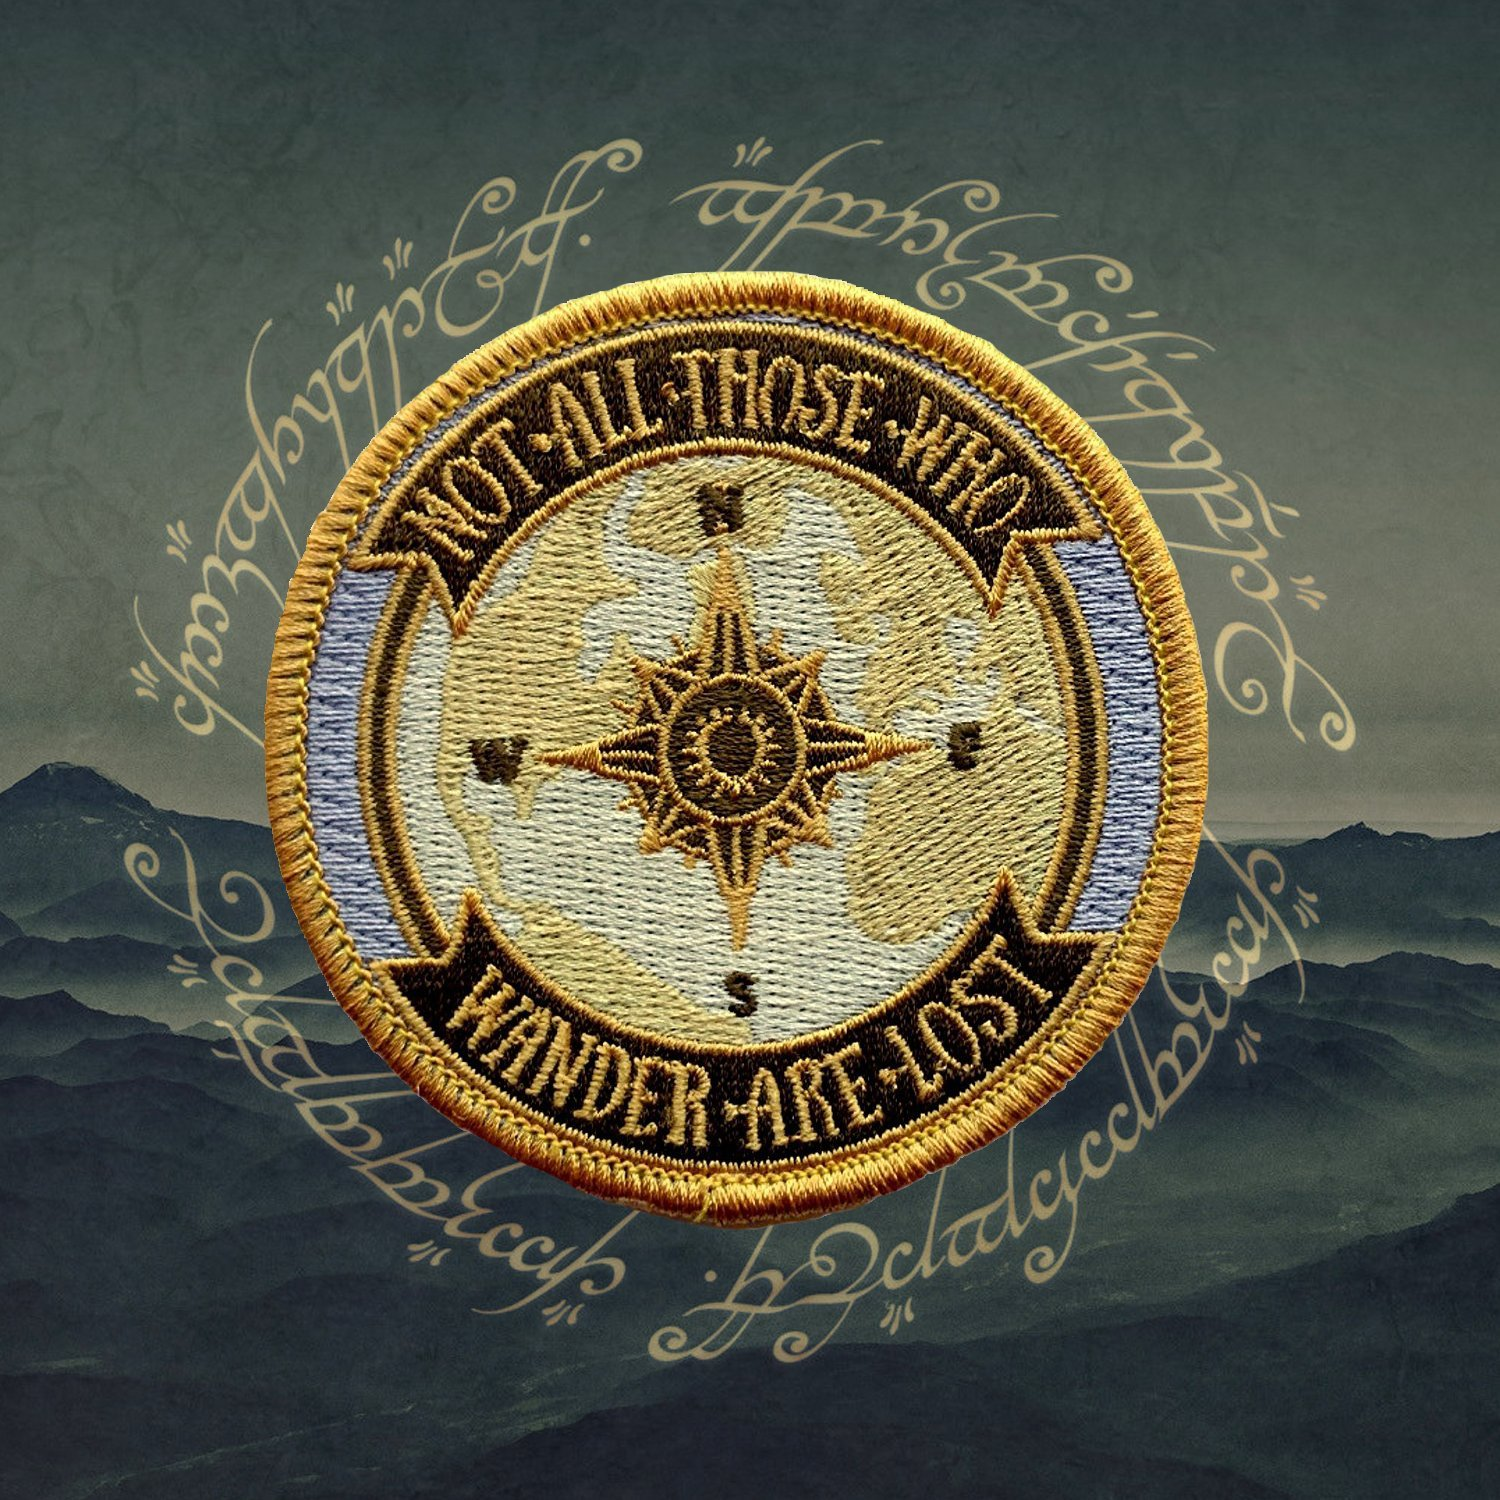 O'Houlihans - Not All Those Who Wander Are Lost - Lord of the Rings Patch O'Houlihans